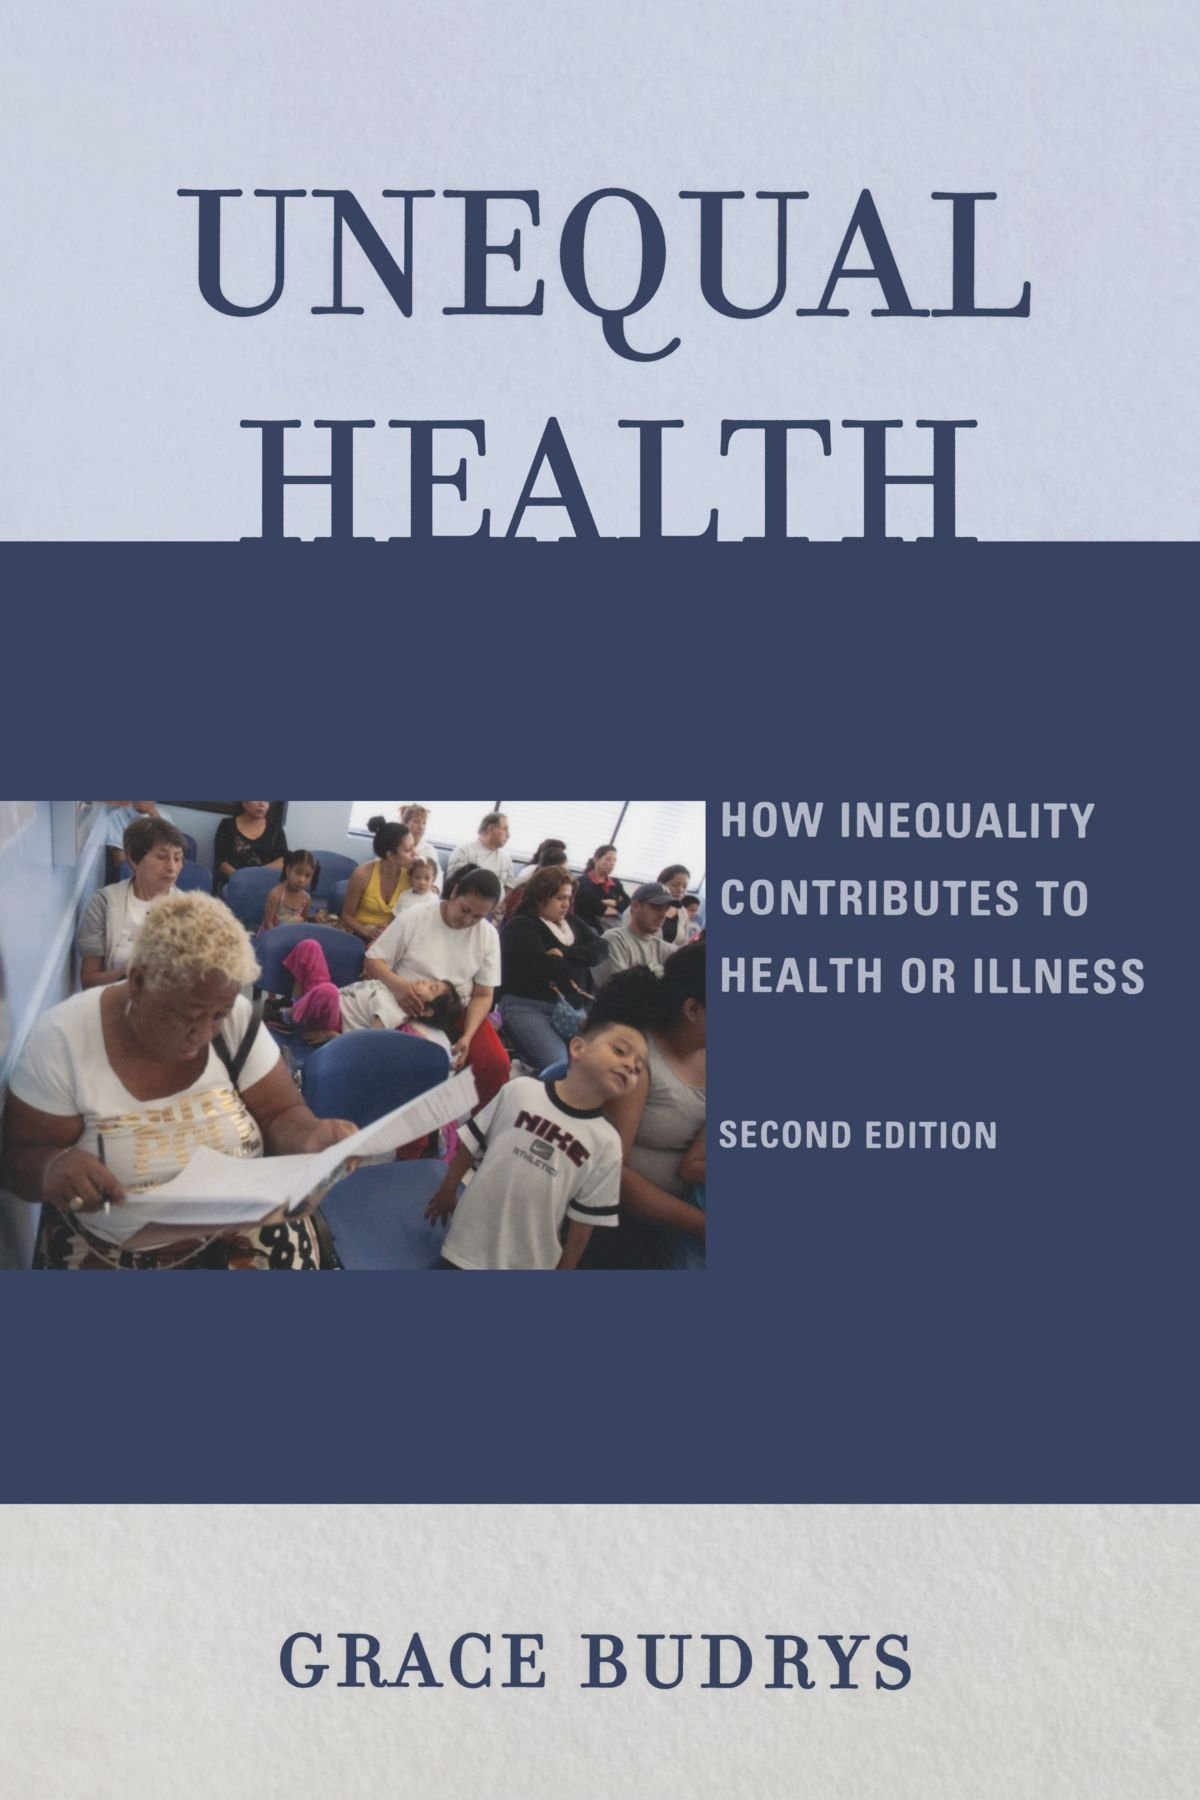 Unequal Health: How Inequality Contributes to Health or Illness